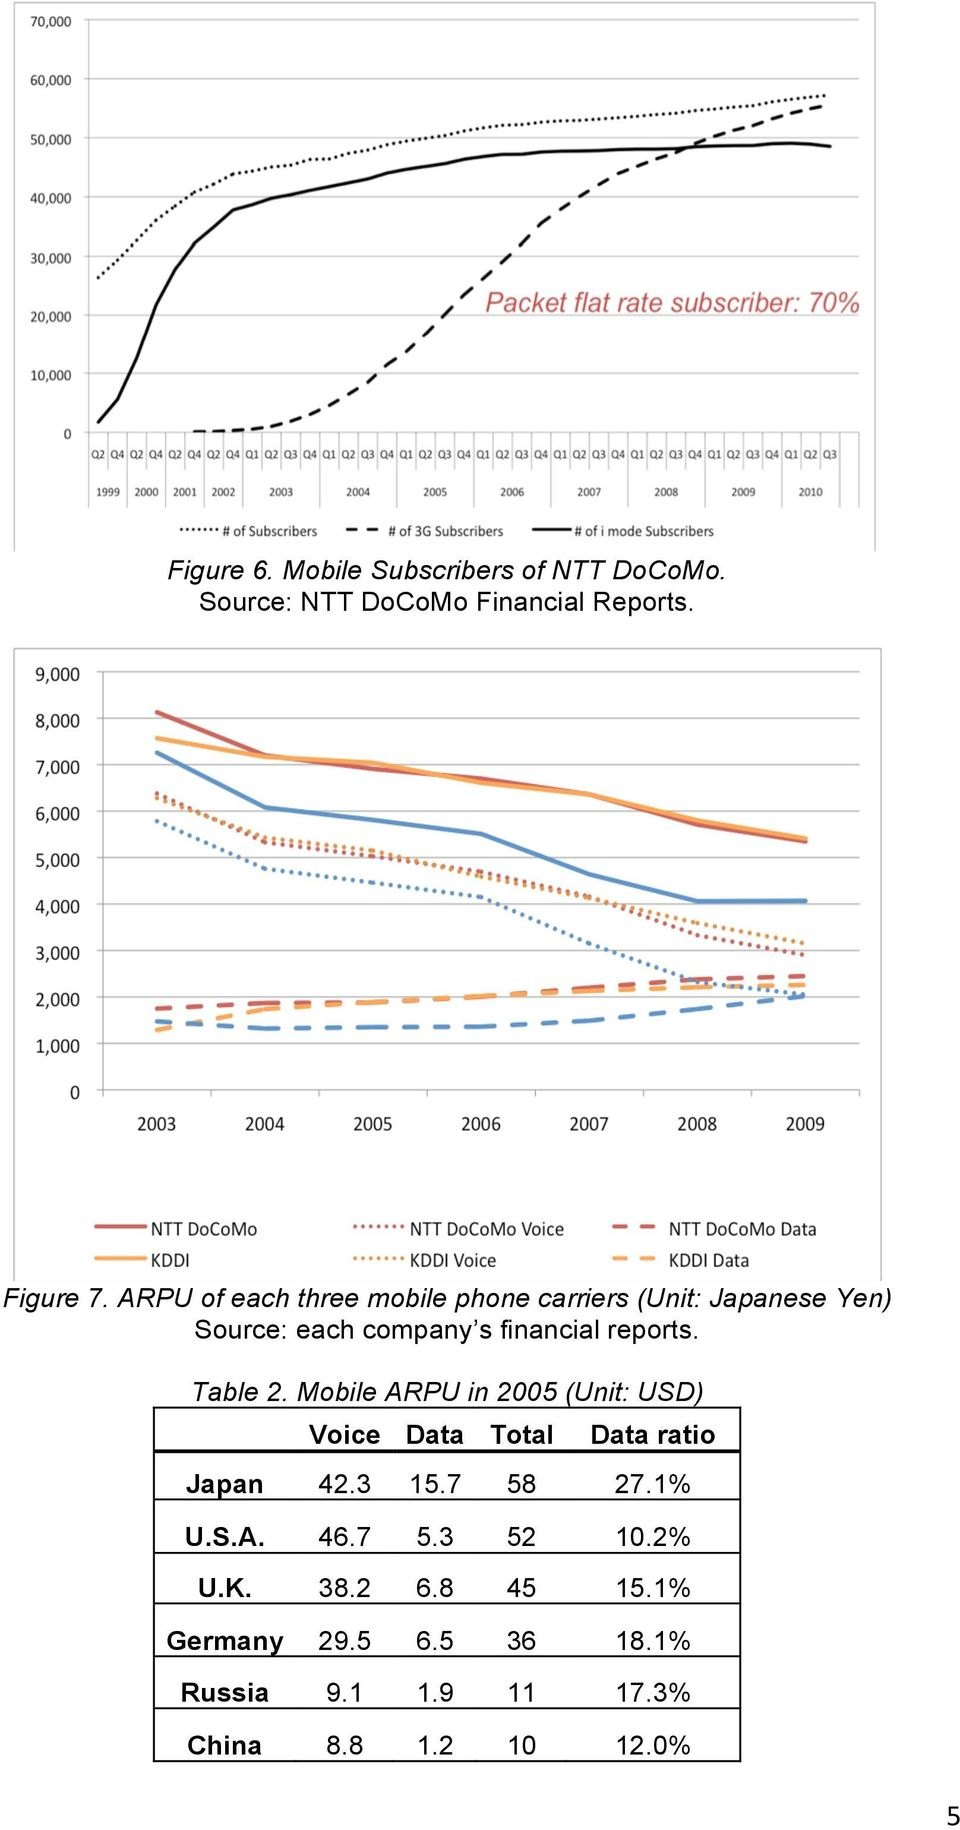 Table 2. Mobile ARPU in 2005 (Unit: USD) Voice Data Total Data ratio Japan 42.3 15.7 58 27.1% U.S.A. 46.